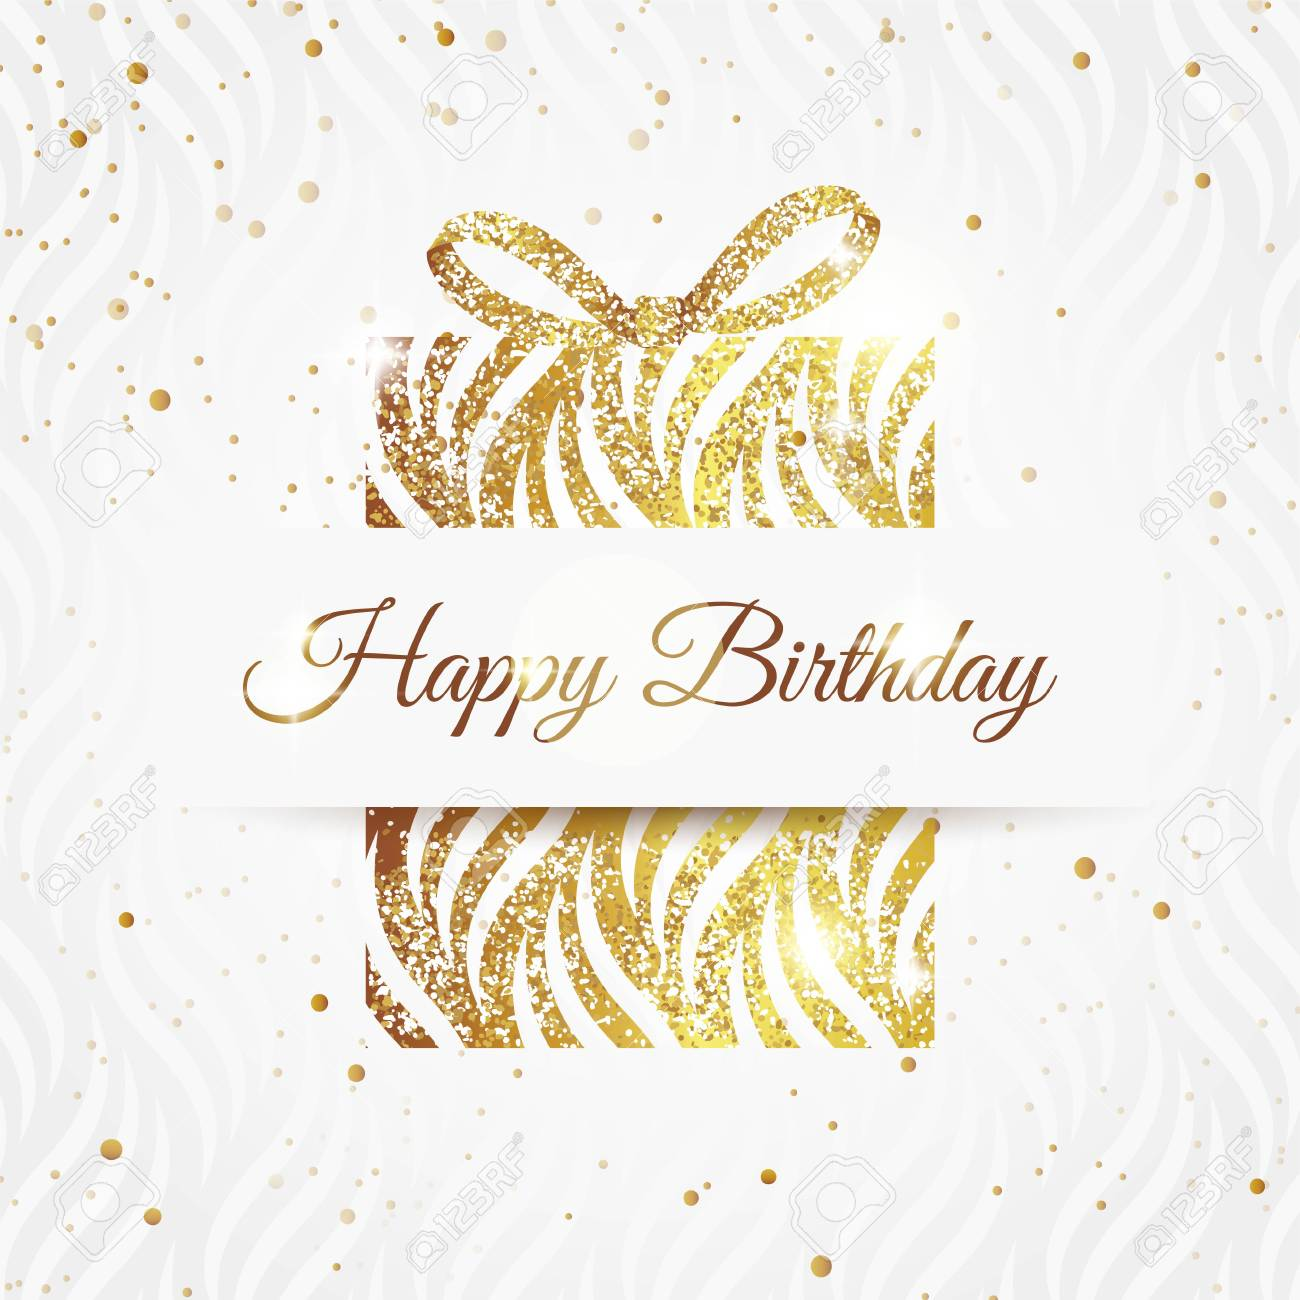 Happy Birthday Elegant Card With Golden Gift And Bow Birthday Royalty Free Cliparts Vectors And Stock Illustration Image 84067504